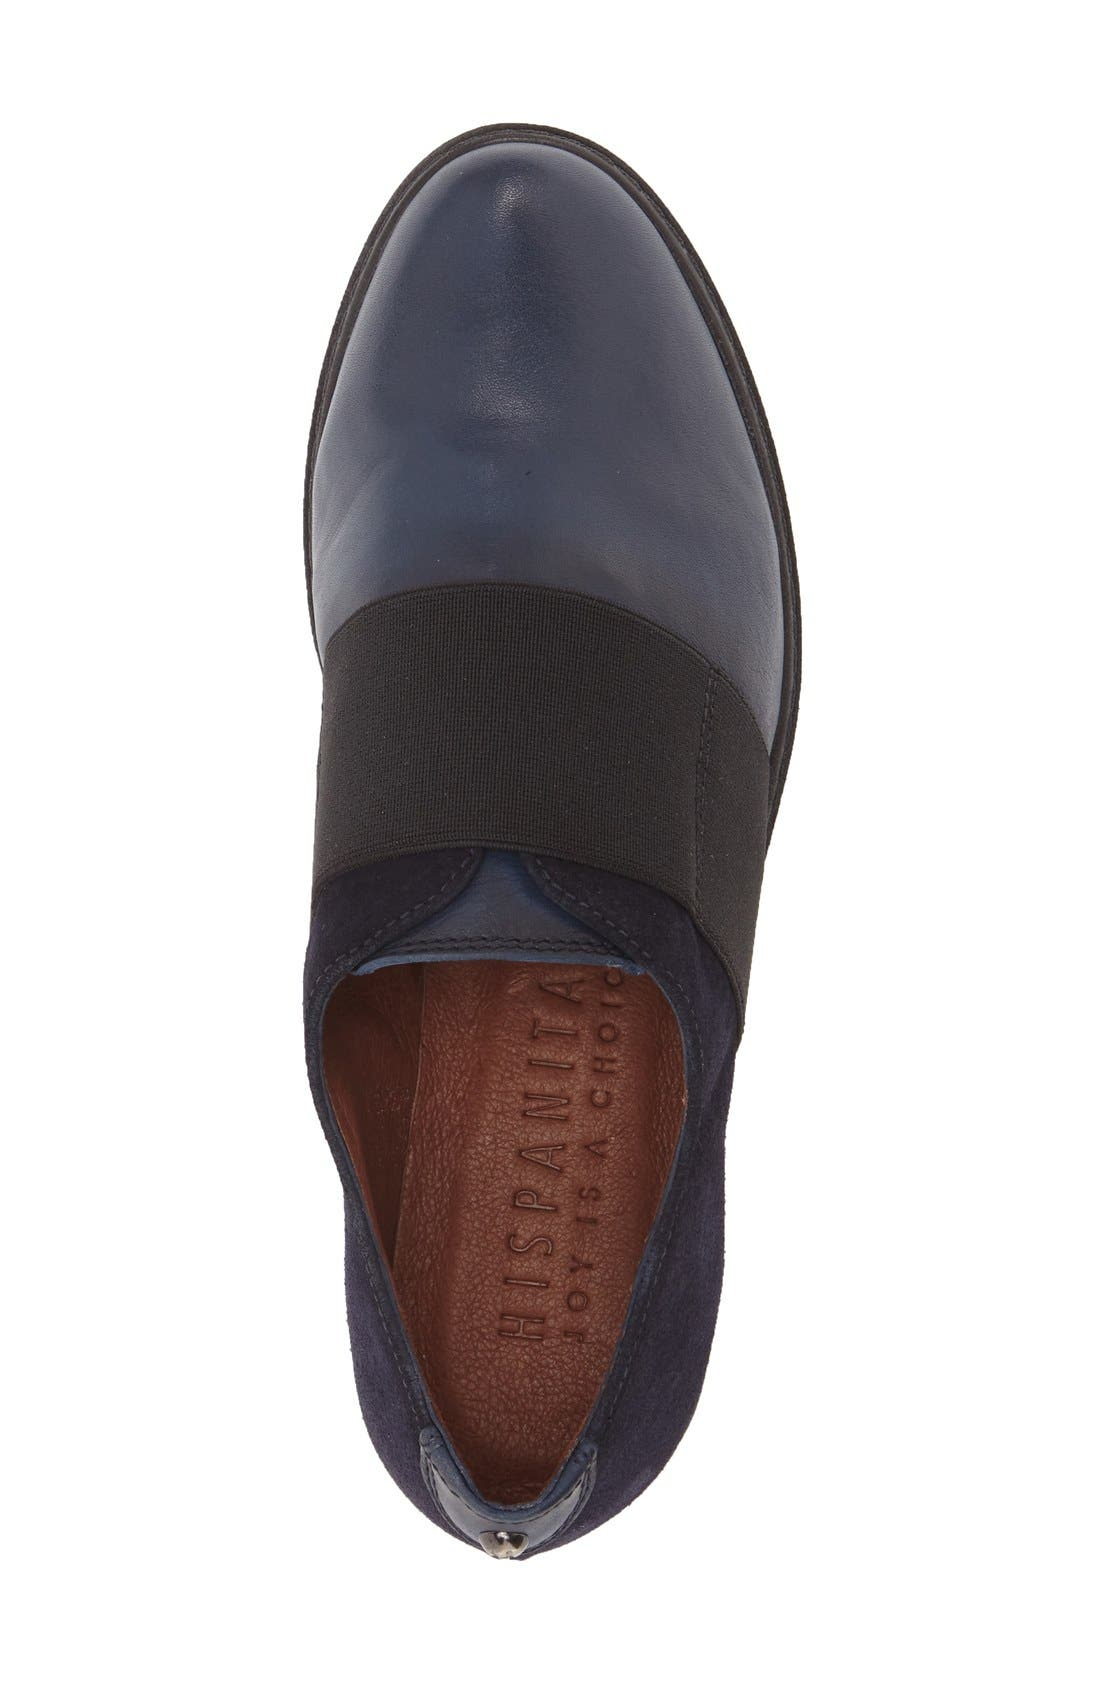 Alternate Image 3  - Hispanitas 'Ardia' Slip-On Platform Flat (Women)